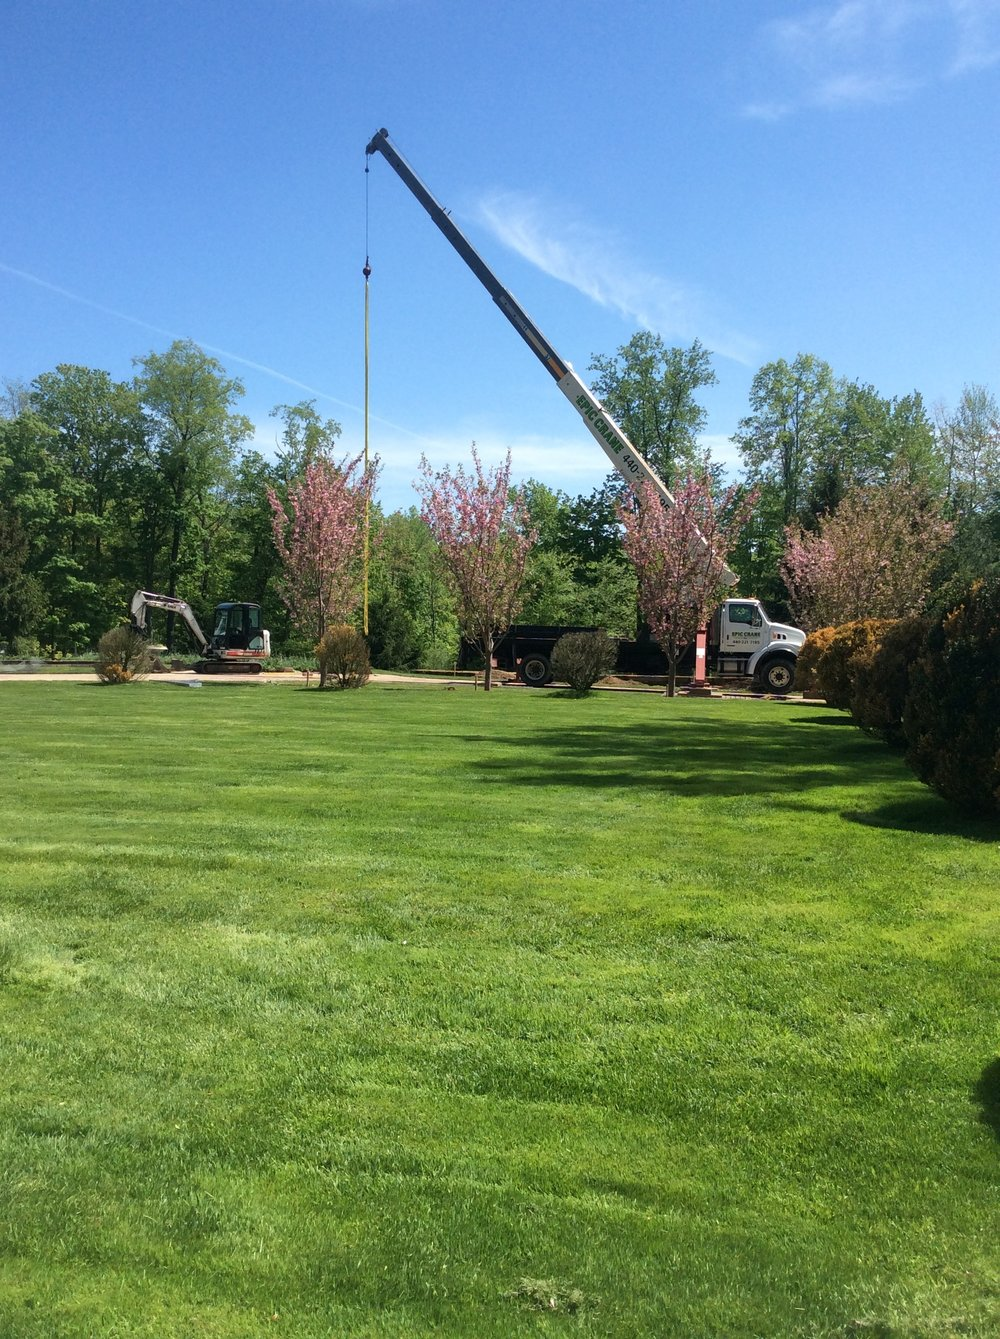 Top lawn care and snow removal in Bainbridge Township, OH